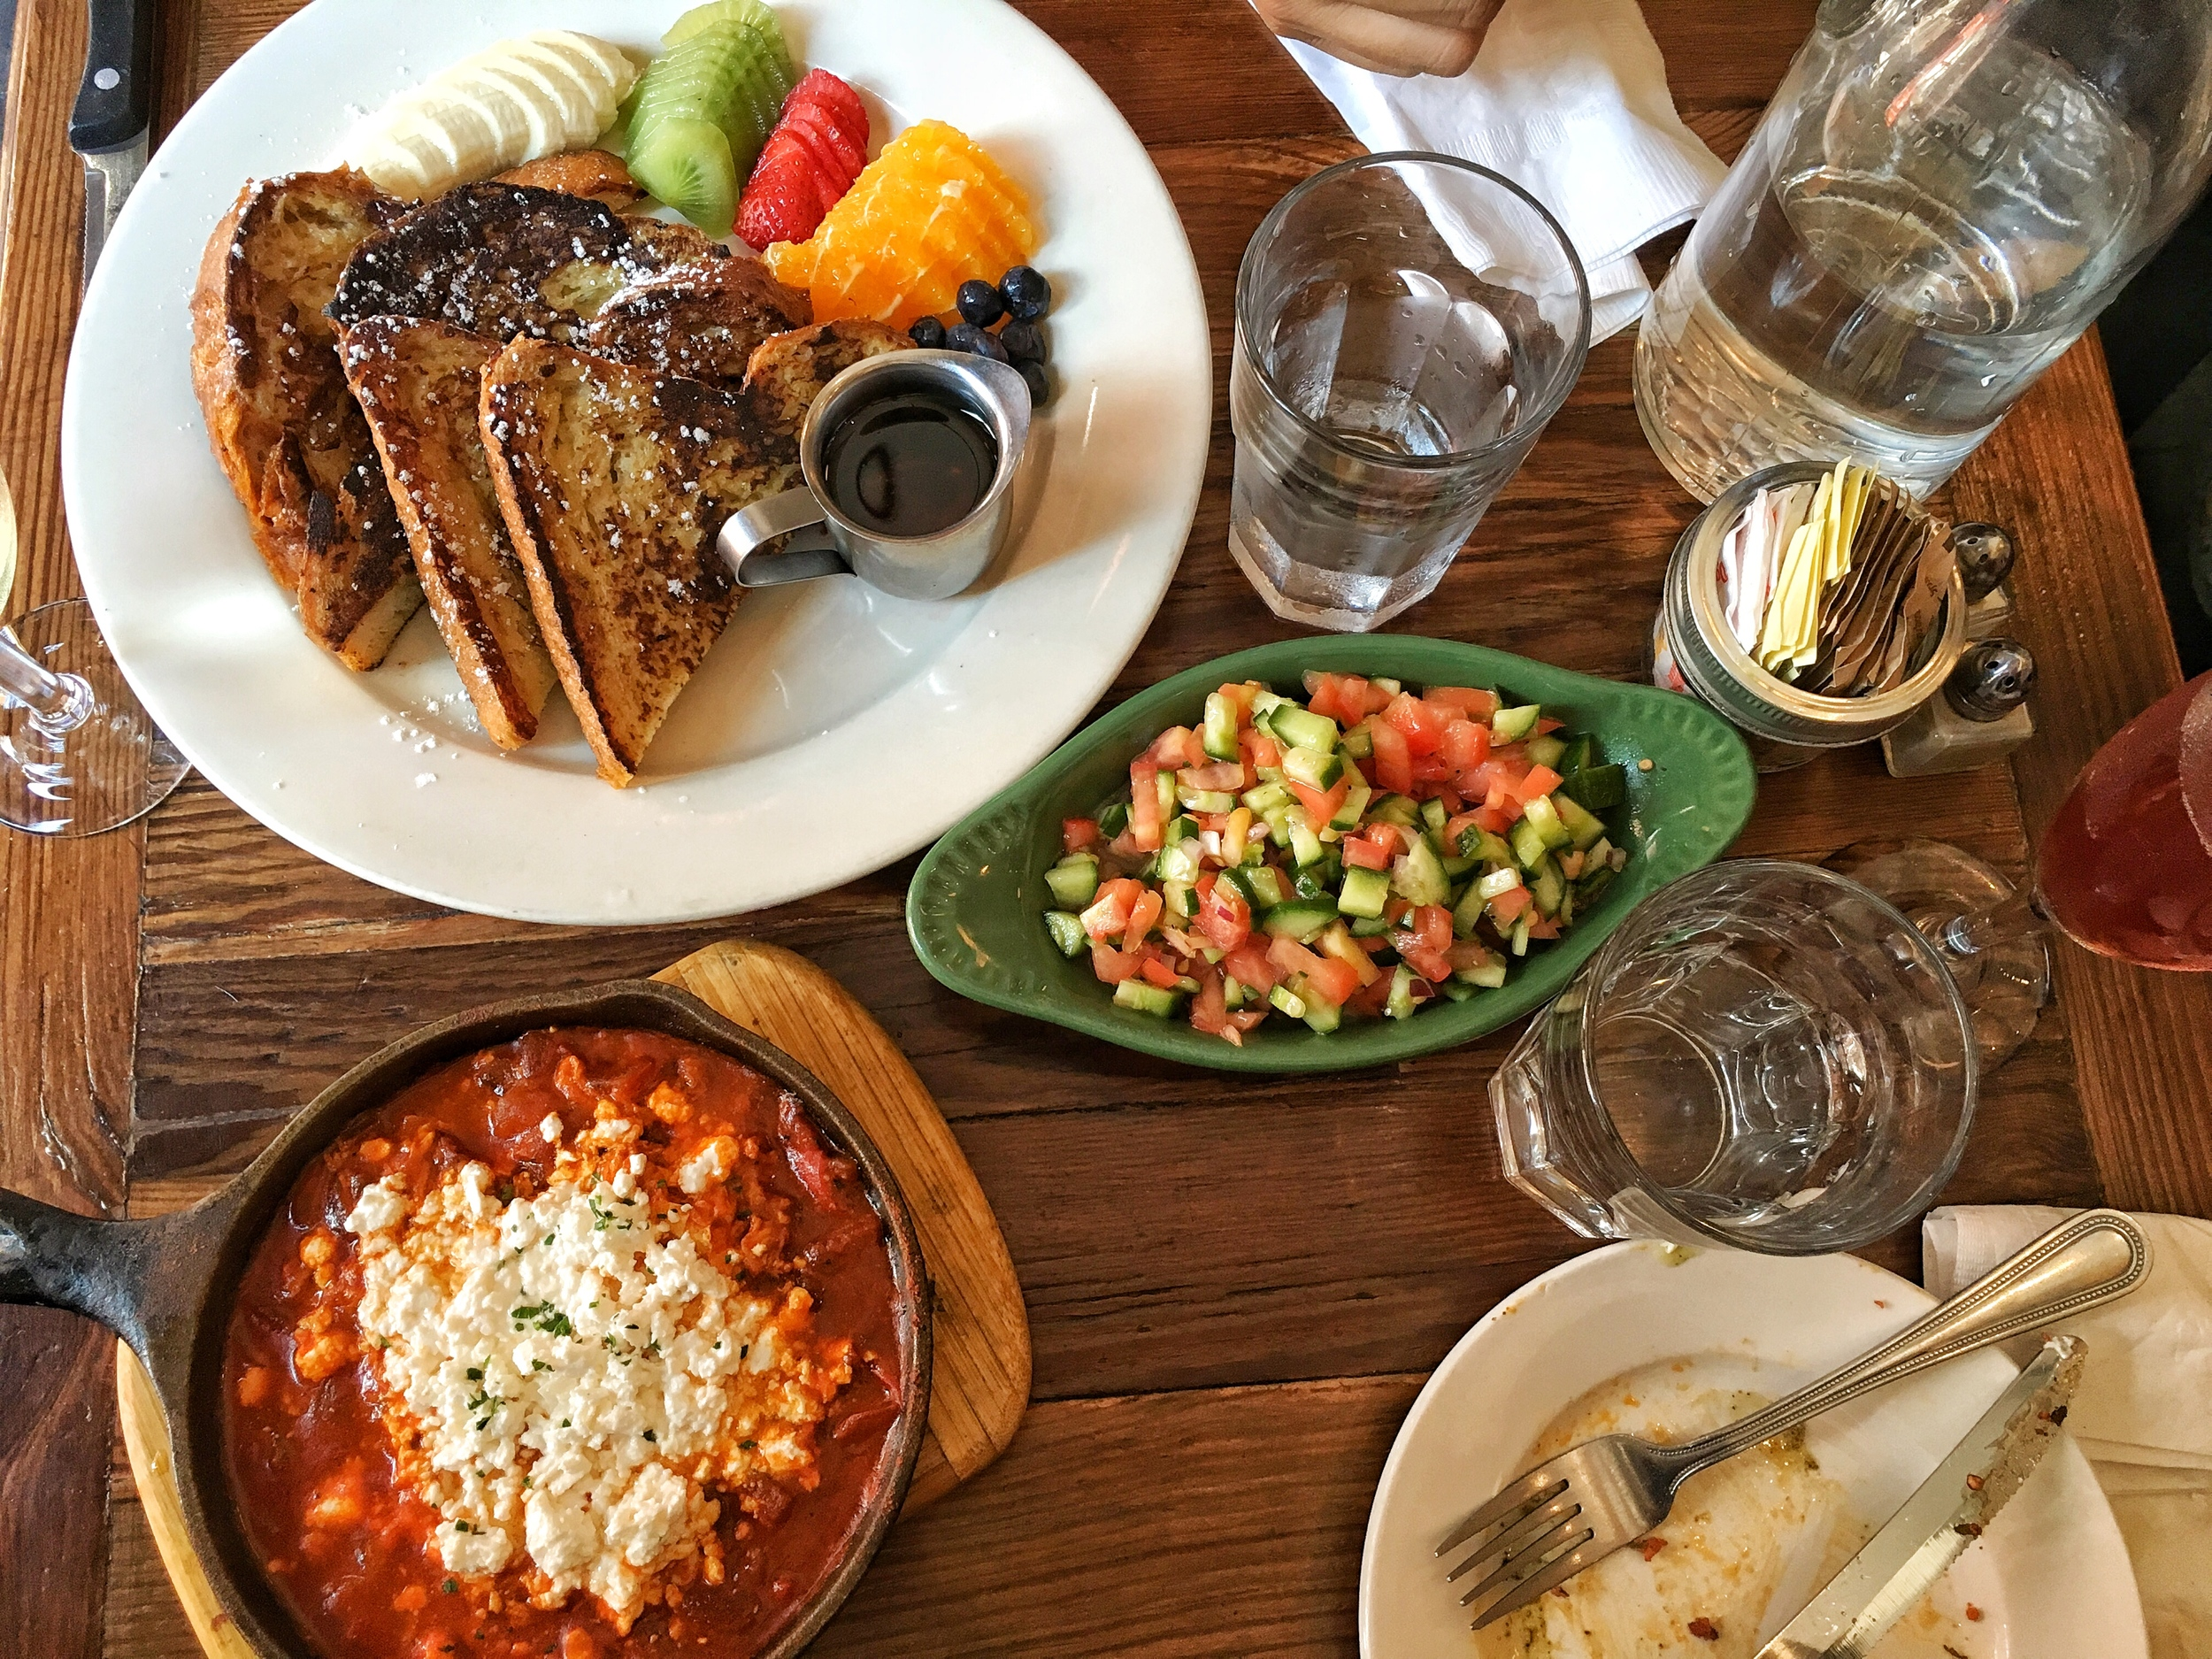 Shakshuka with two baked eggs and feta cheese, Israeli salad, Challah bread french toast with selection of fruits